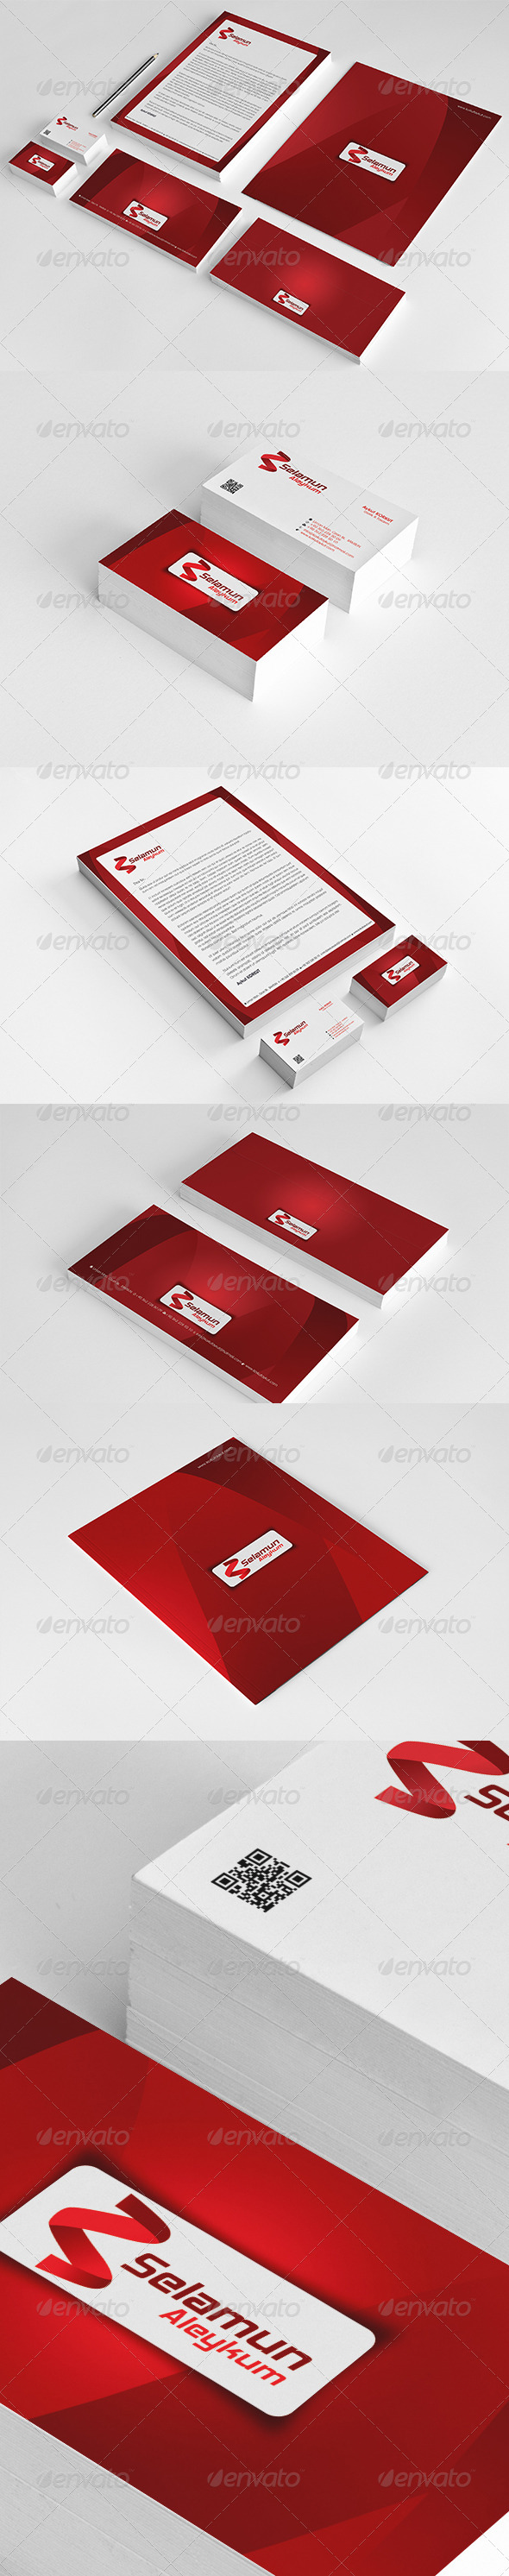 Selamun Corporate Identity Package  - Stationery Print Templates